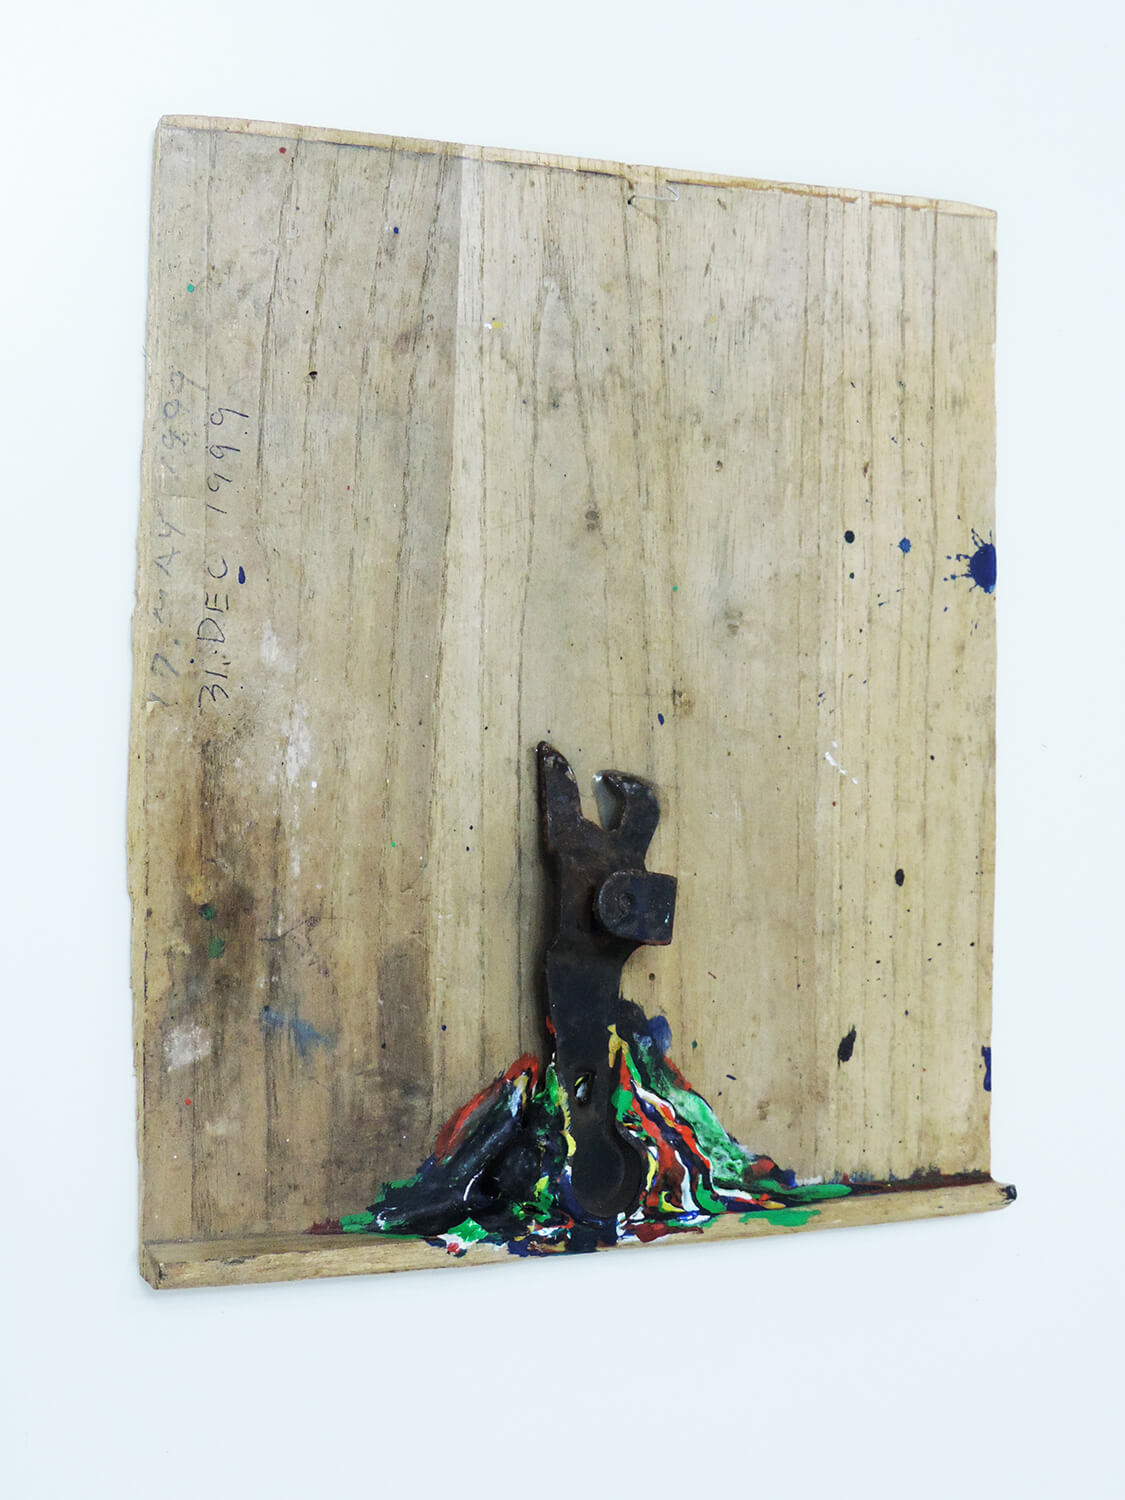 <b>Untitled</b><br>Acrylic on wood and metal 27 × 22.9 × 3.9  cm 1999